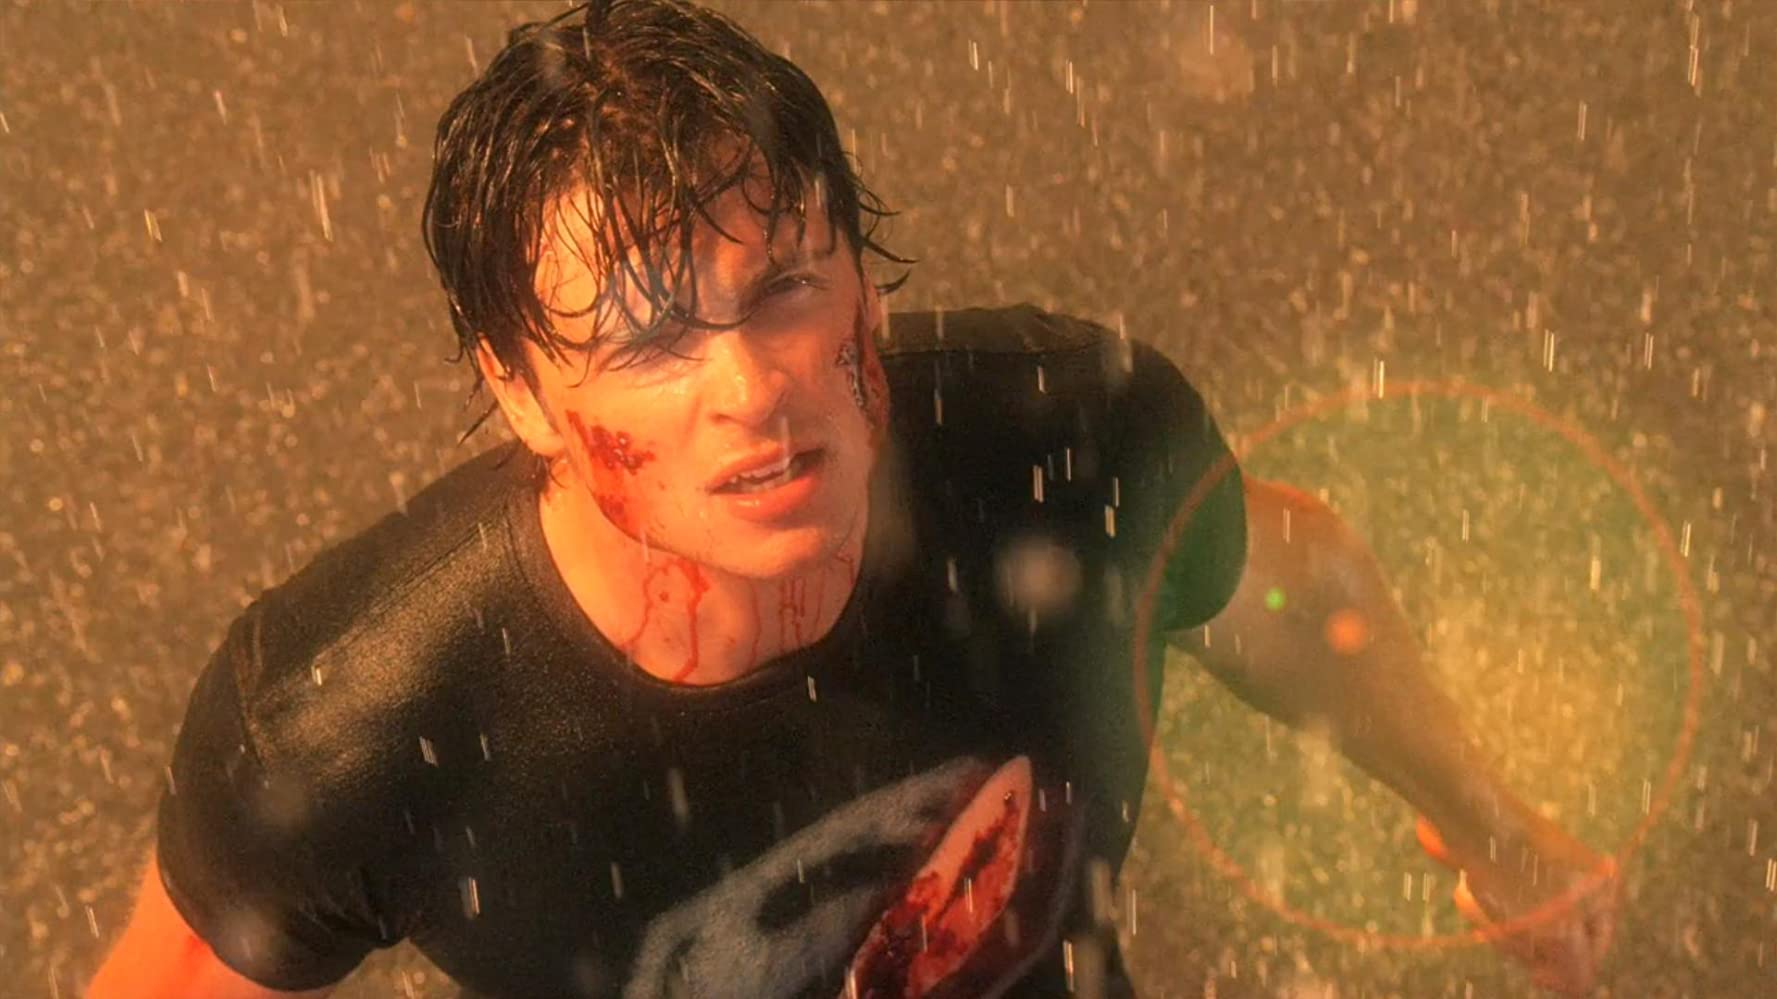 Tom Welling in Smallville (2001)